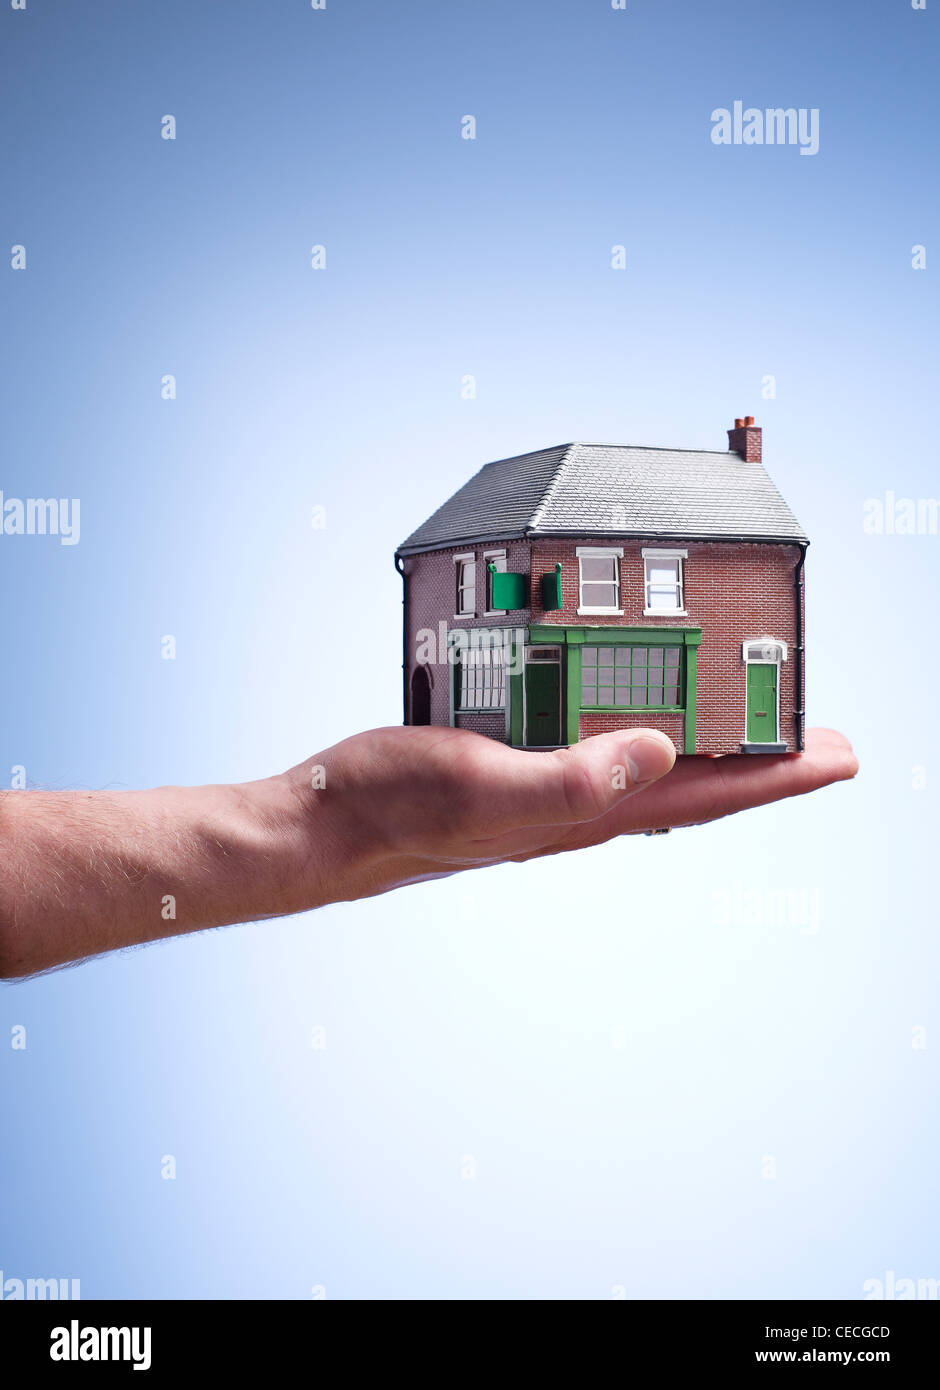 A house held in a hand - Stock Image